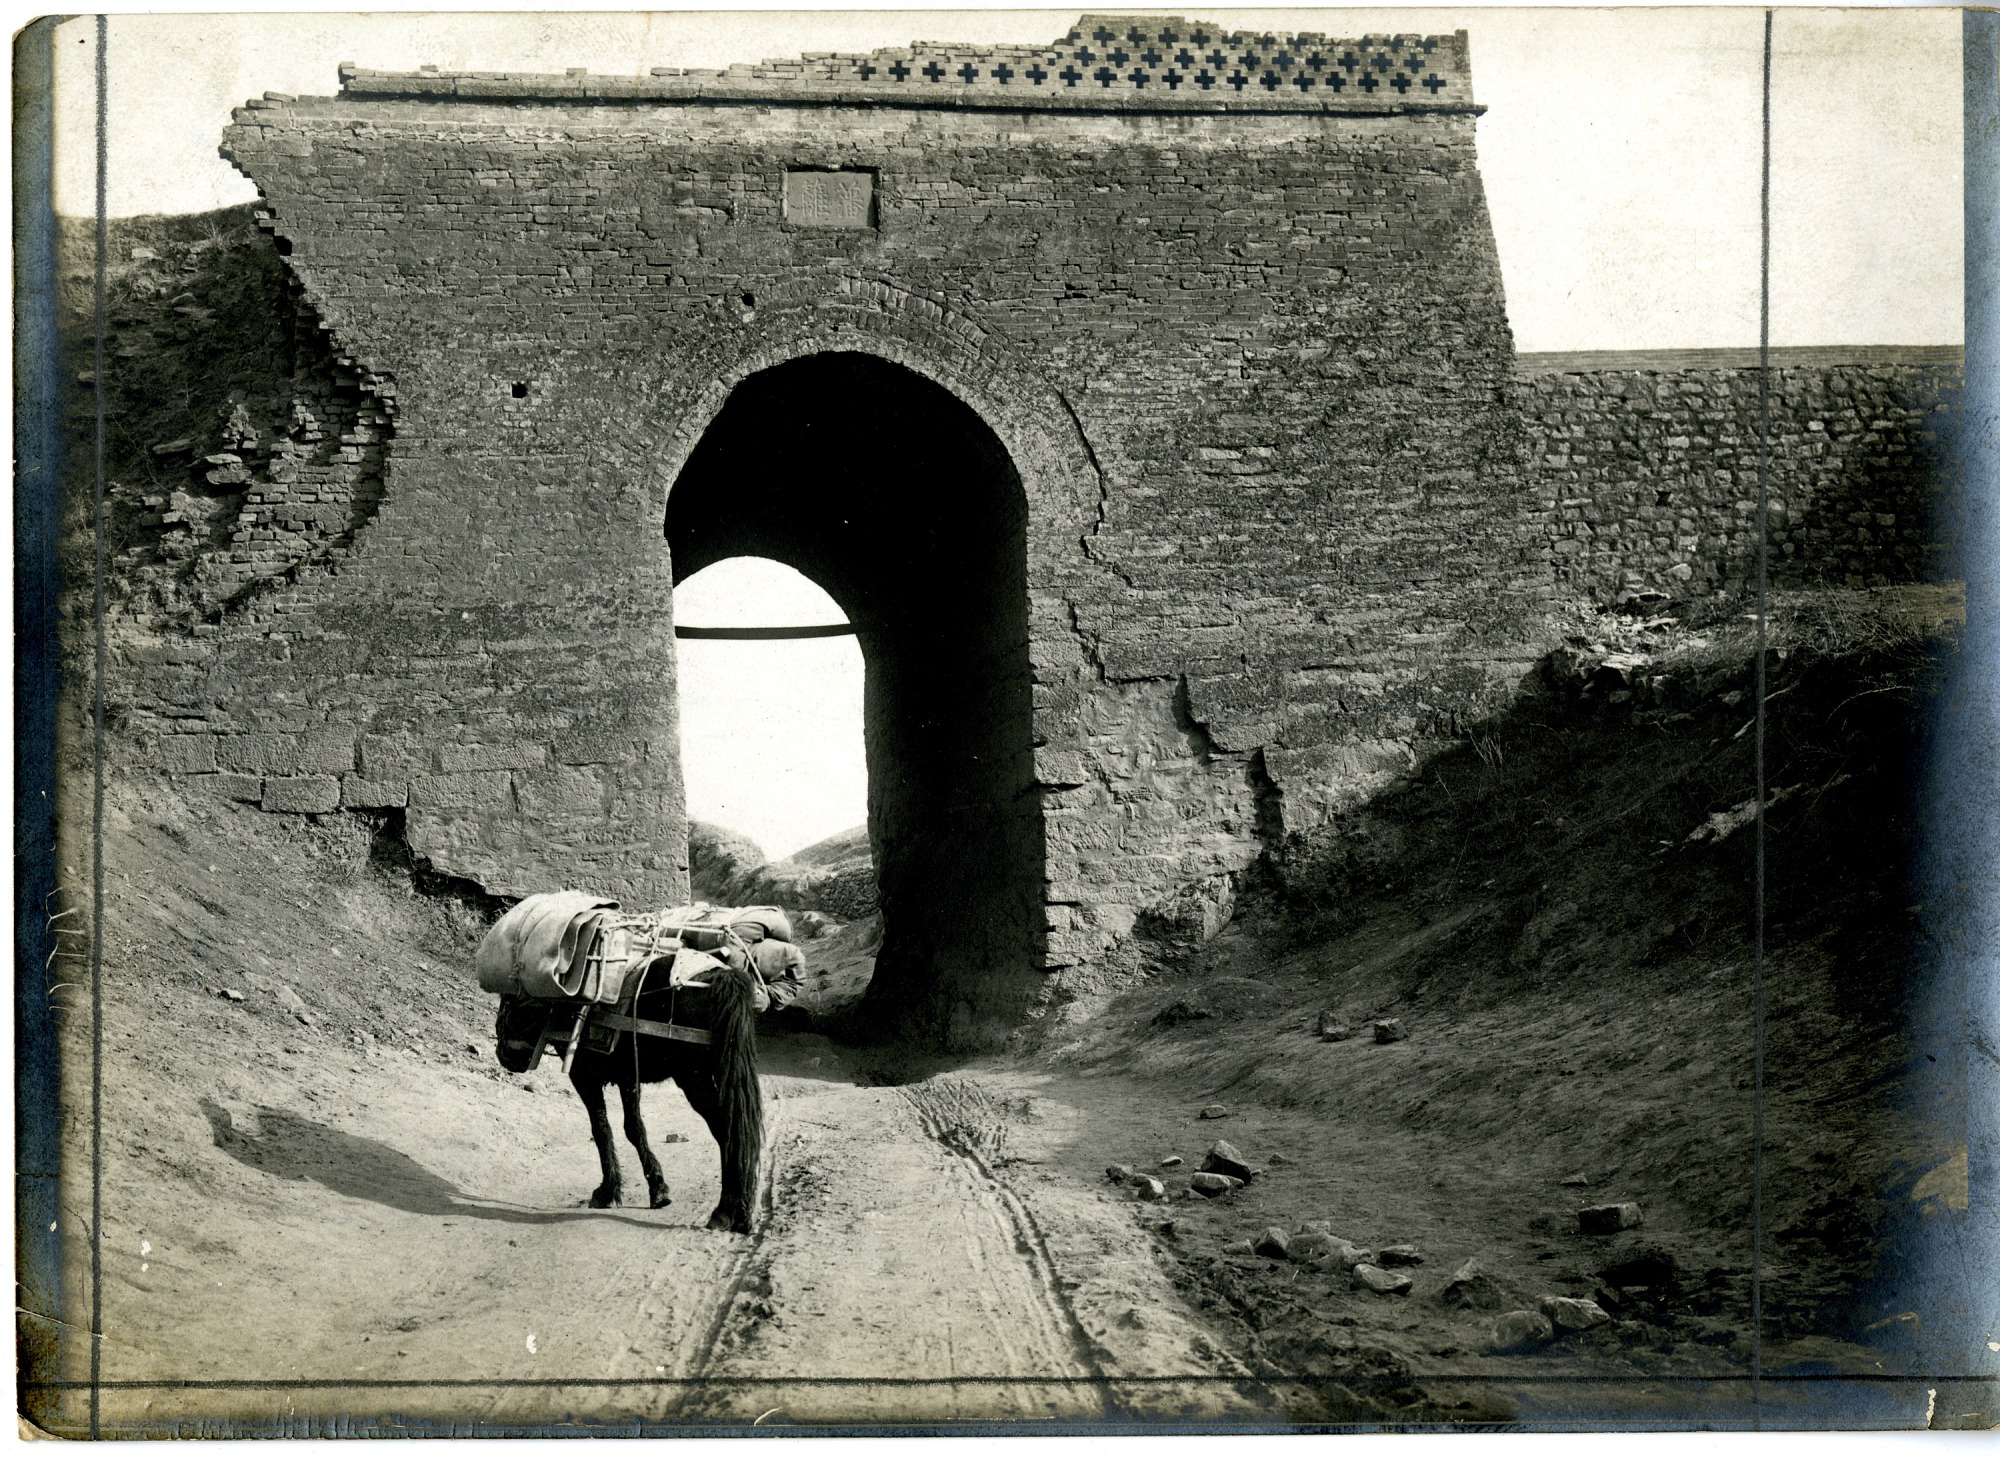 China, Miscellaneous Scenes: Horse loaded with supplies waiting near deteriorating gate